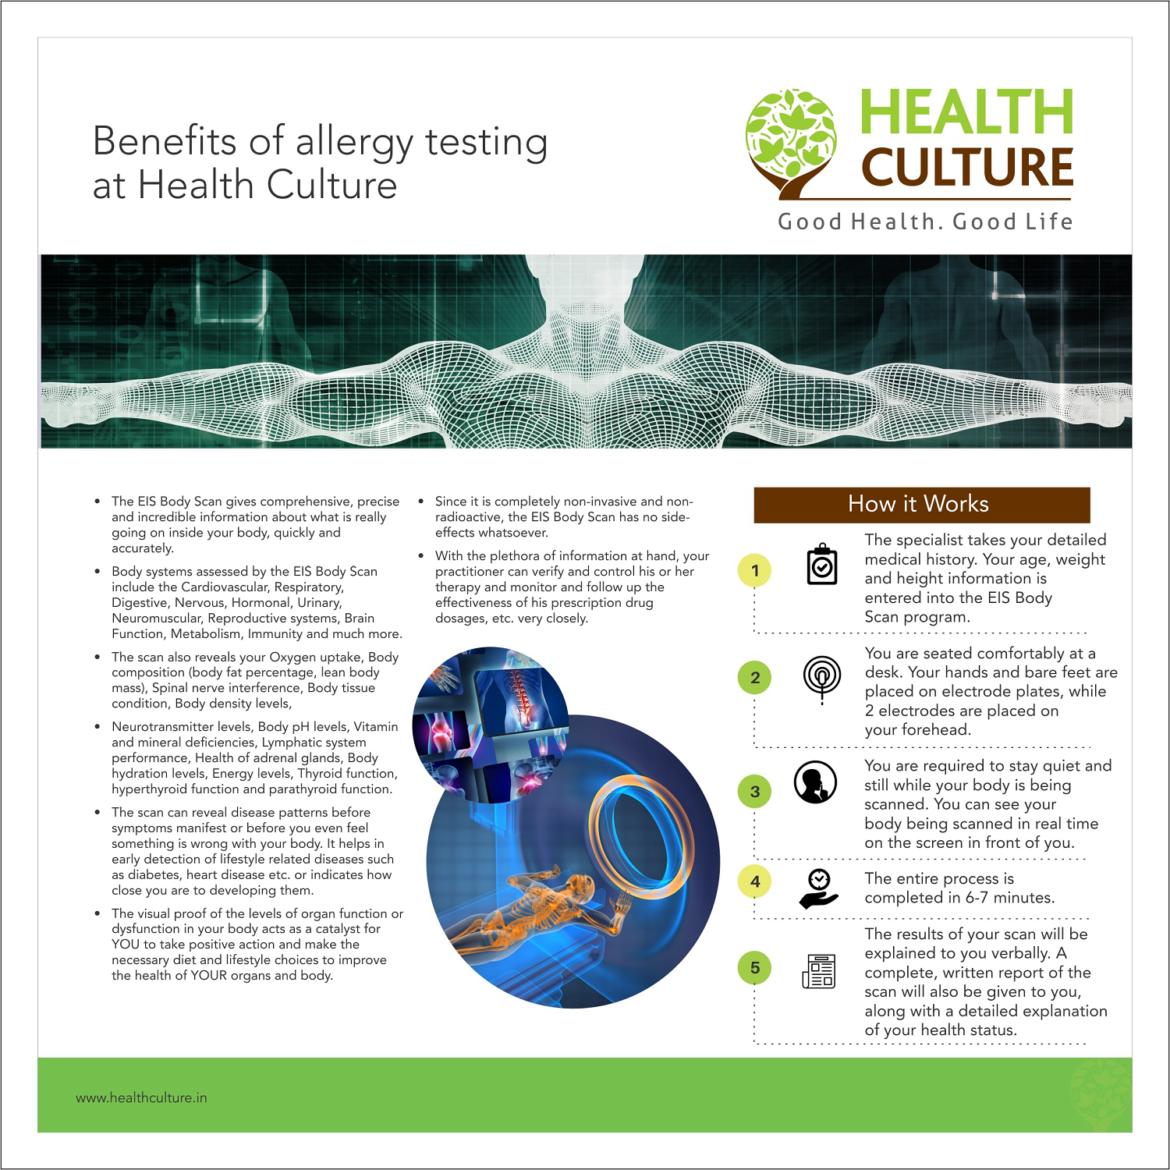 Benefits of allergy testing article - Health Culture